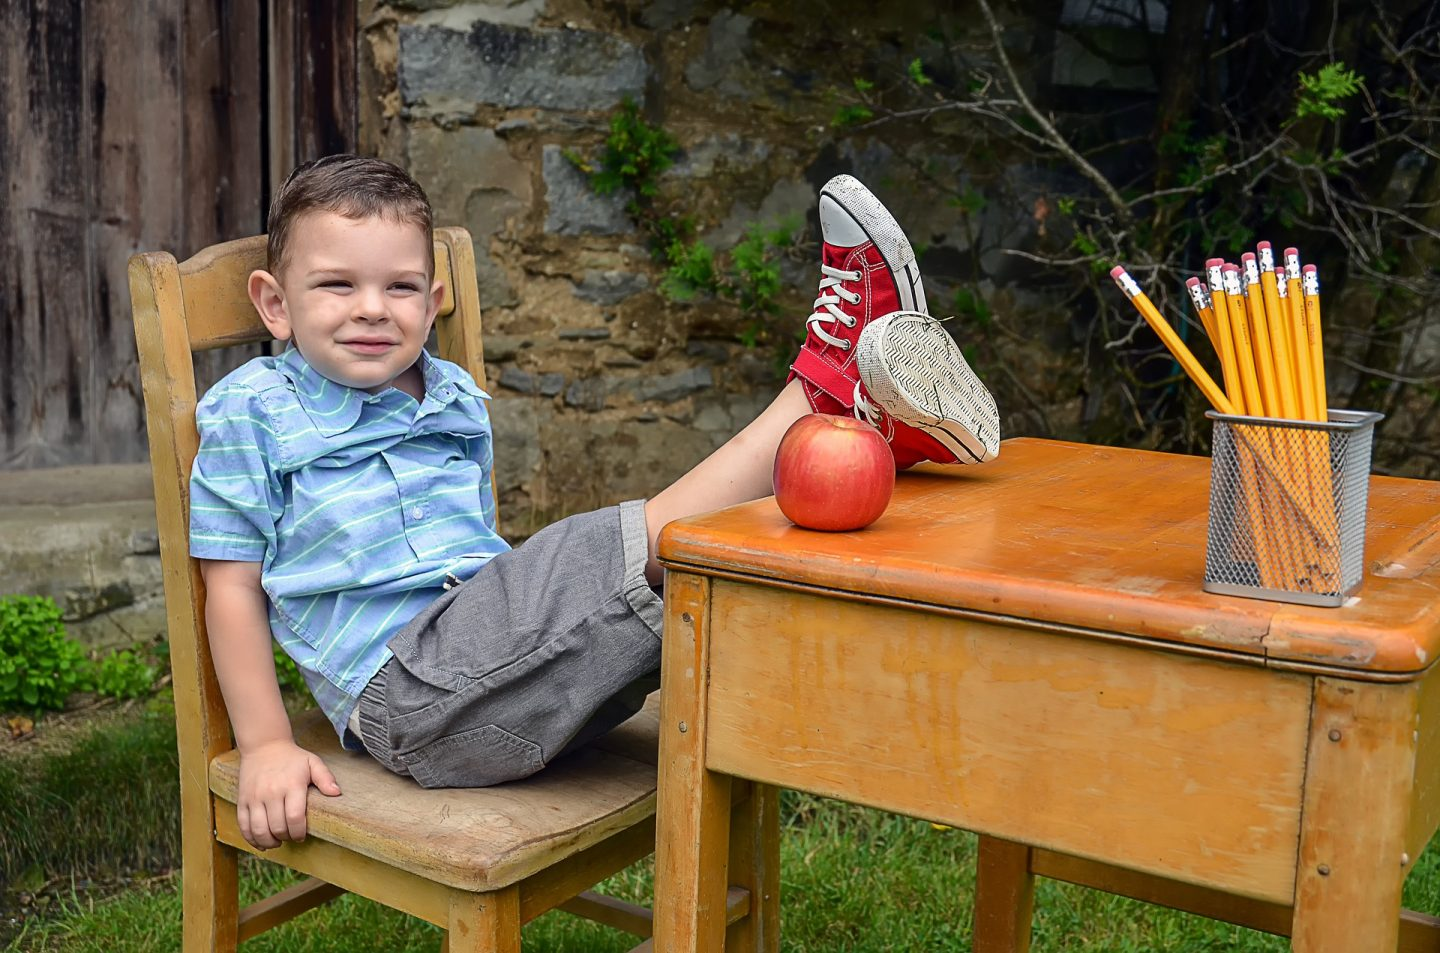 A little boy sits on a wooden chair with his feet up on a wooden desk. There is an apple and a dish of yellow pencils on the desk.